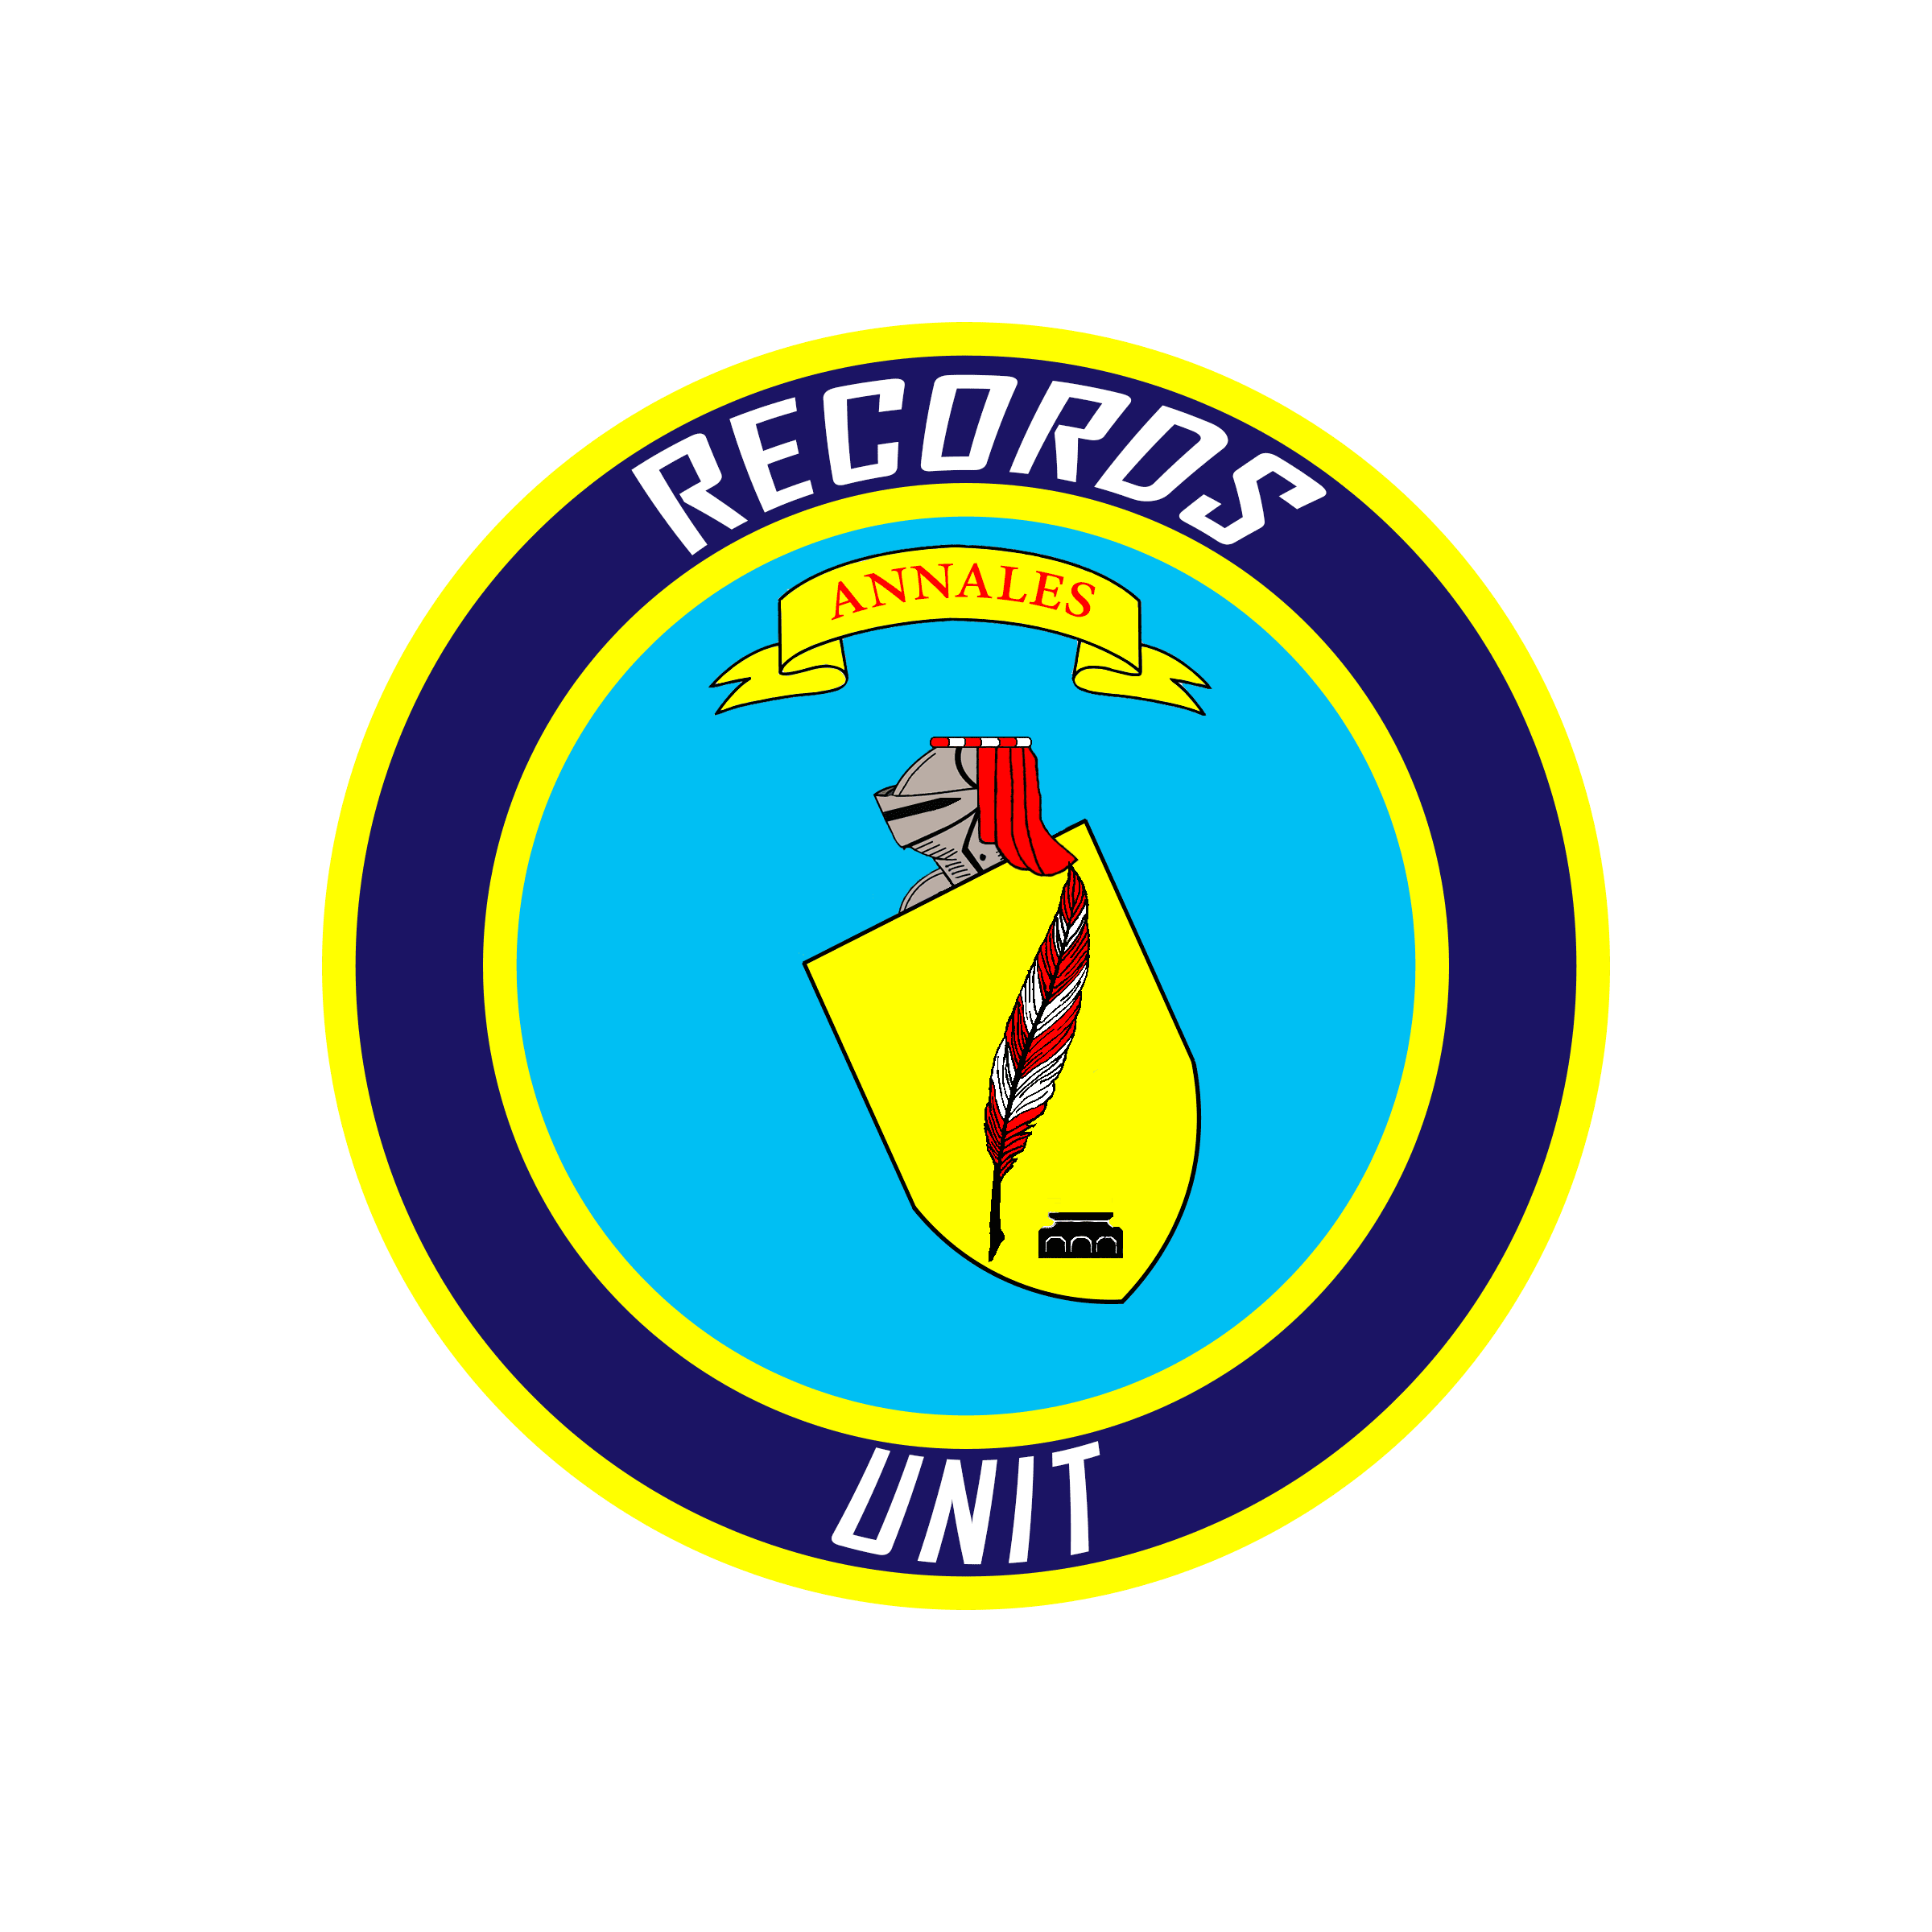 Records Unit Seal